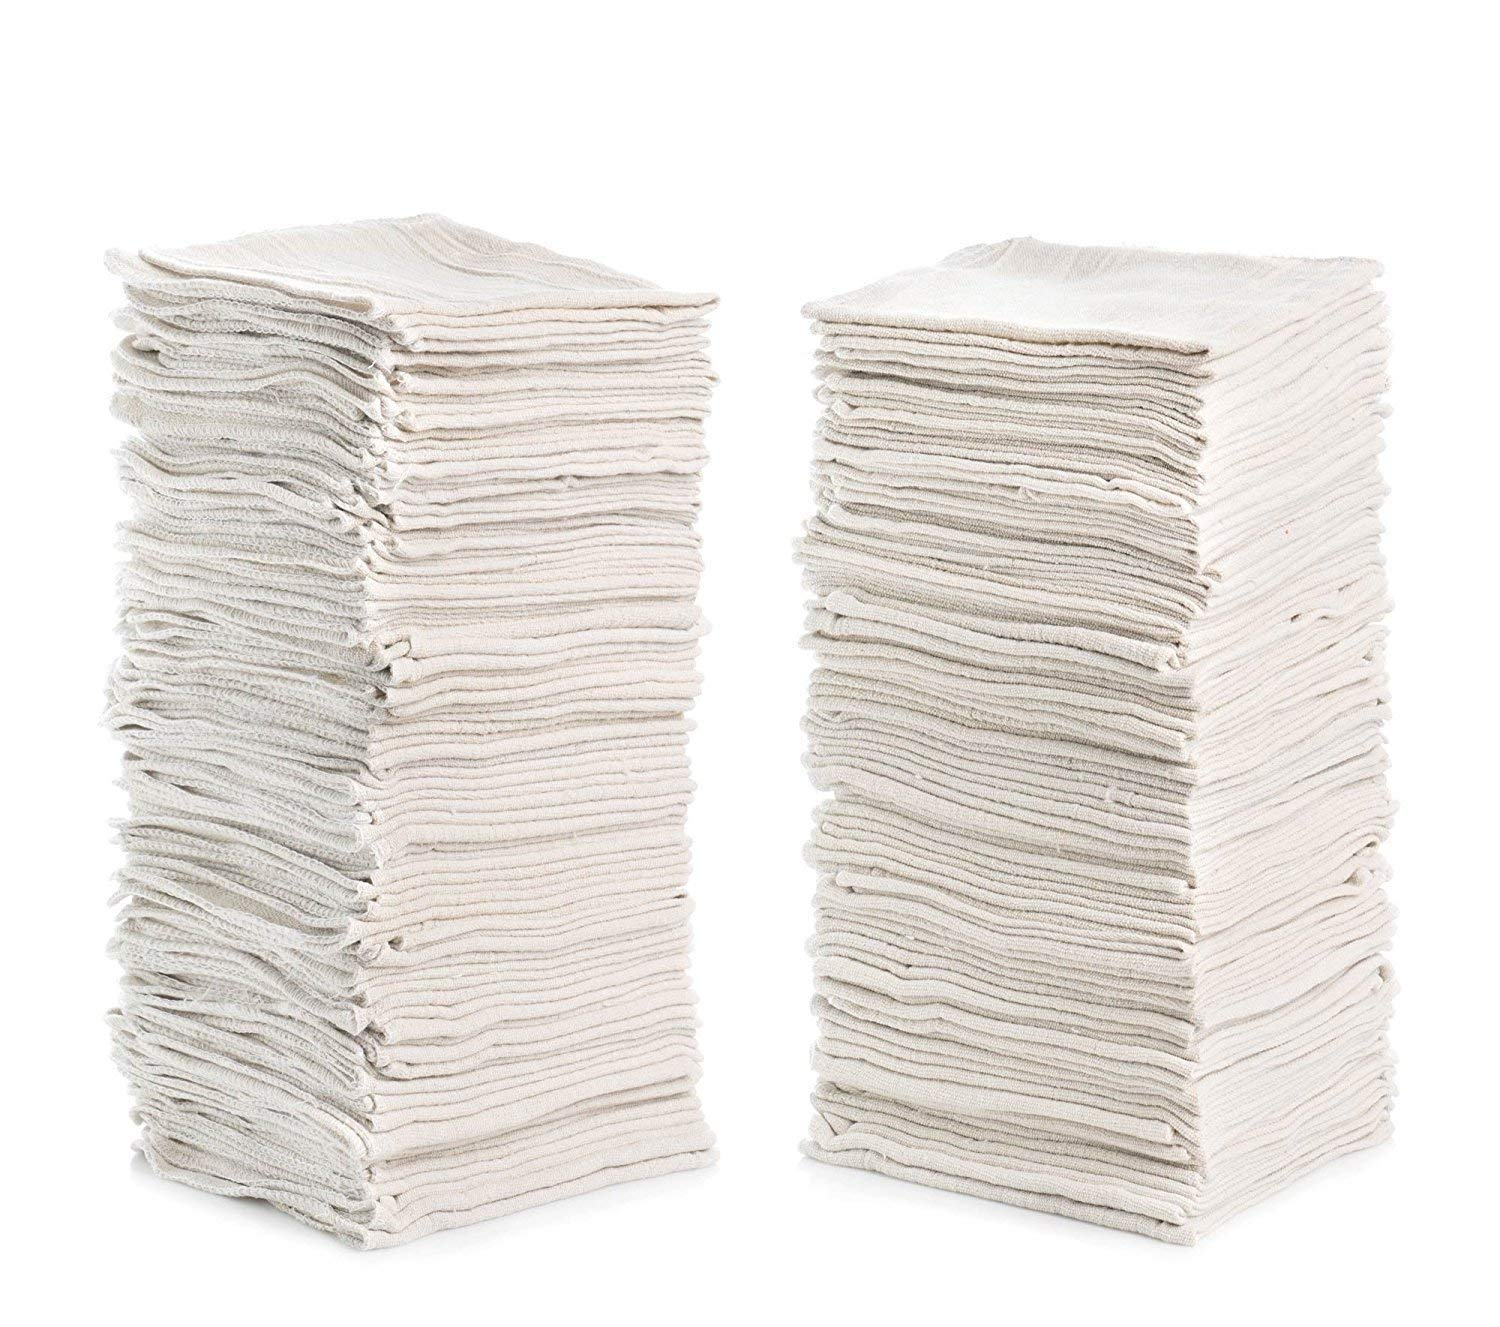 """Simpli-Magic 500 Pack 79170 Commercial Grade White Shop Towels (Pack of 500) Size 12"""" x 14"""", 500 Pack by Simpli-Magic (Image #1)"""